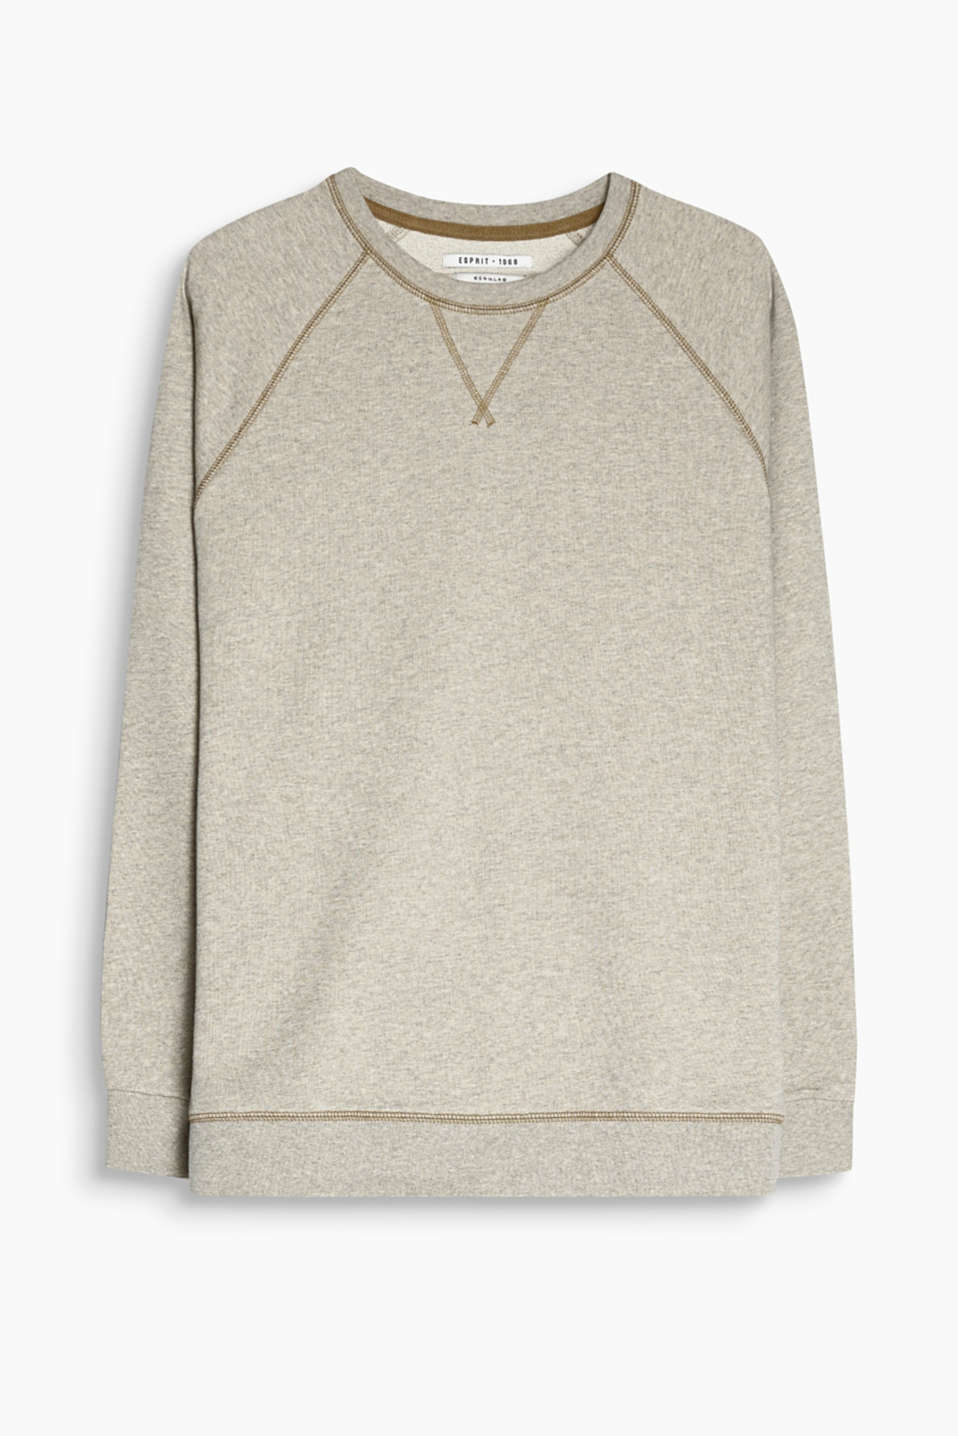 Ein sportives Fashion Essential: Sweater mit dekorativen Flatlock-Nähten, 100% Baumwolle